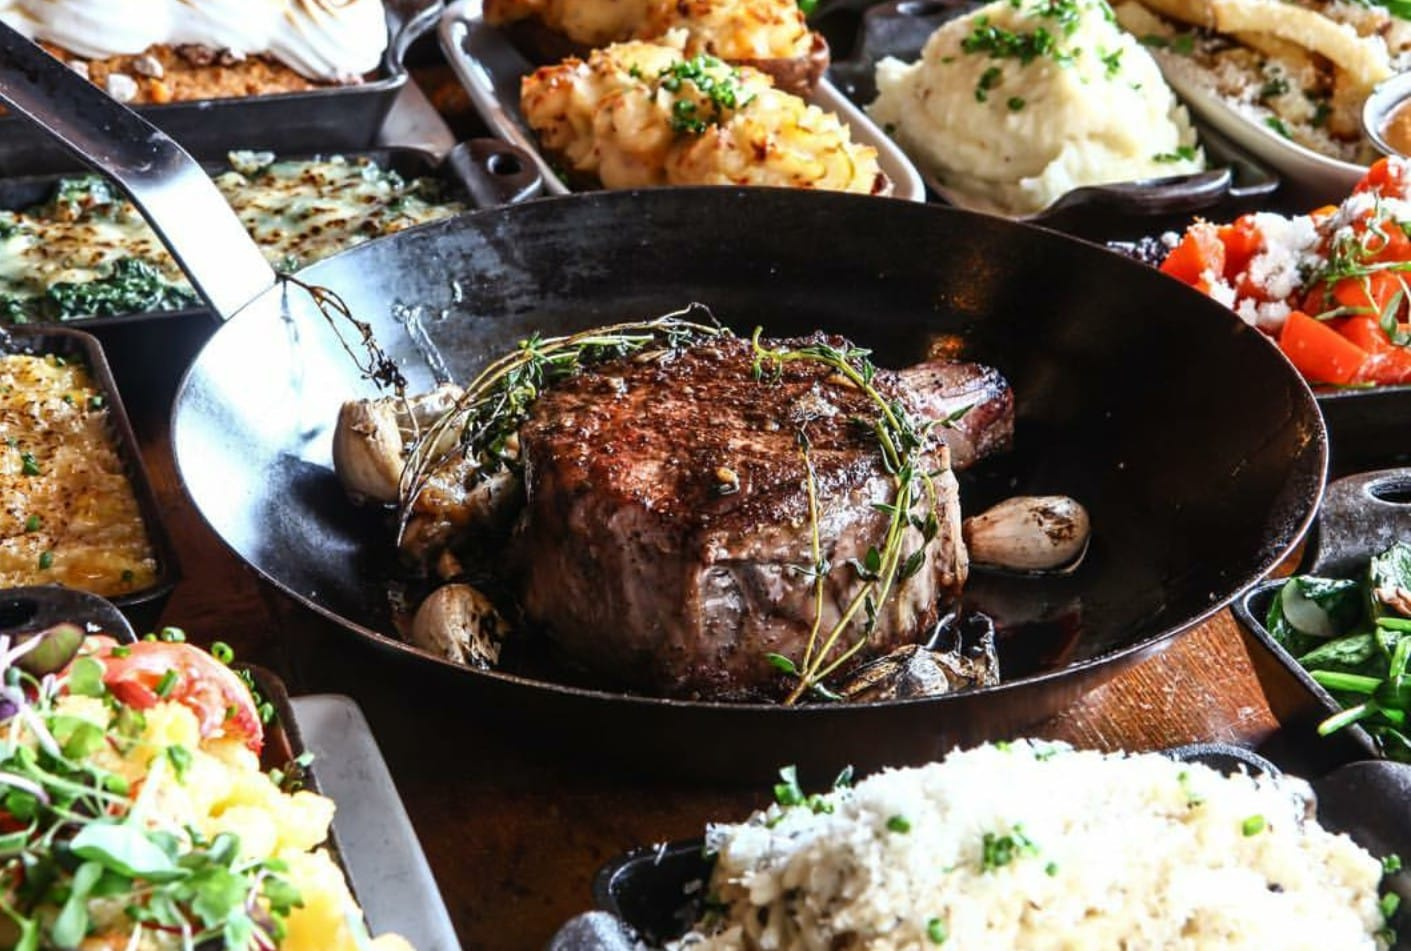 A Kitchen Fire Temporarily Closes Little Alley Steak in Buckhead